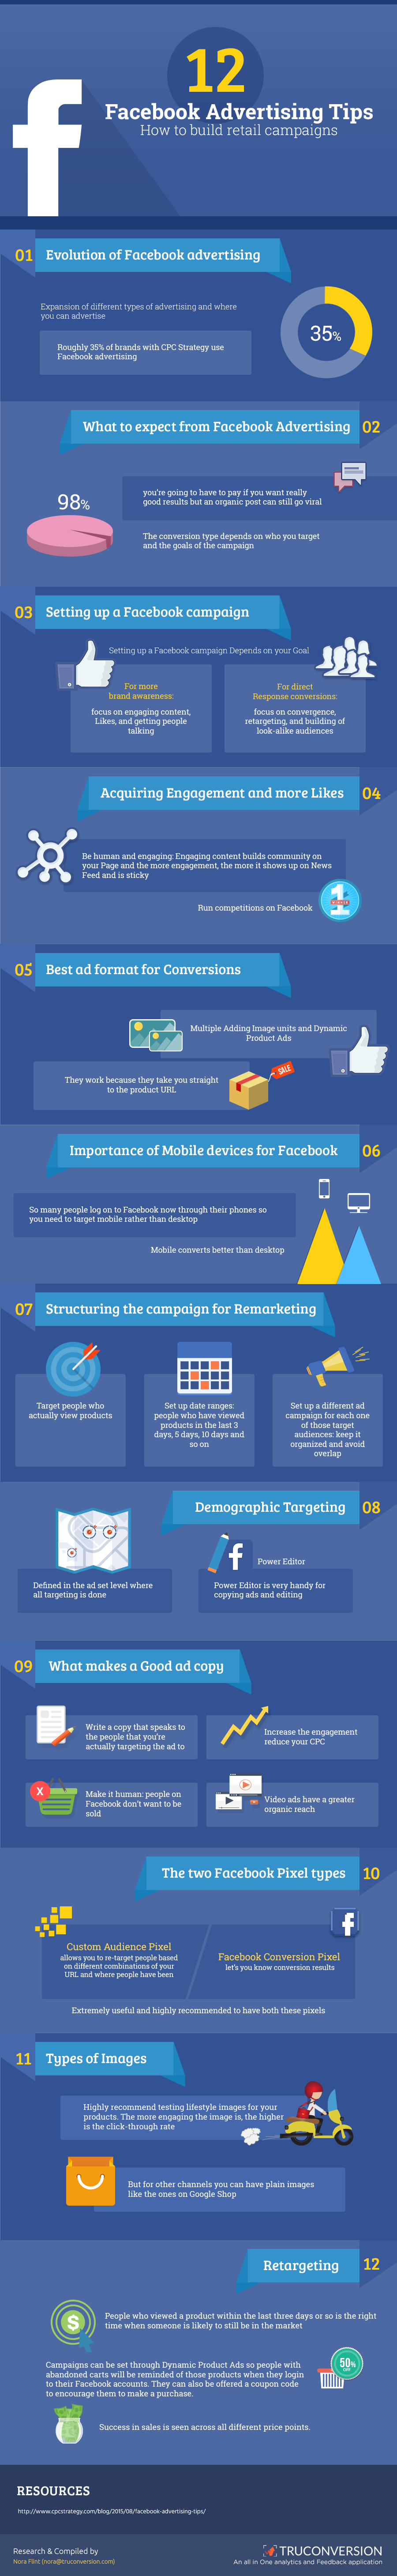 12 Tips On How To Build Retail Campaigns On Facebook (Infographic)